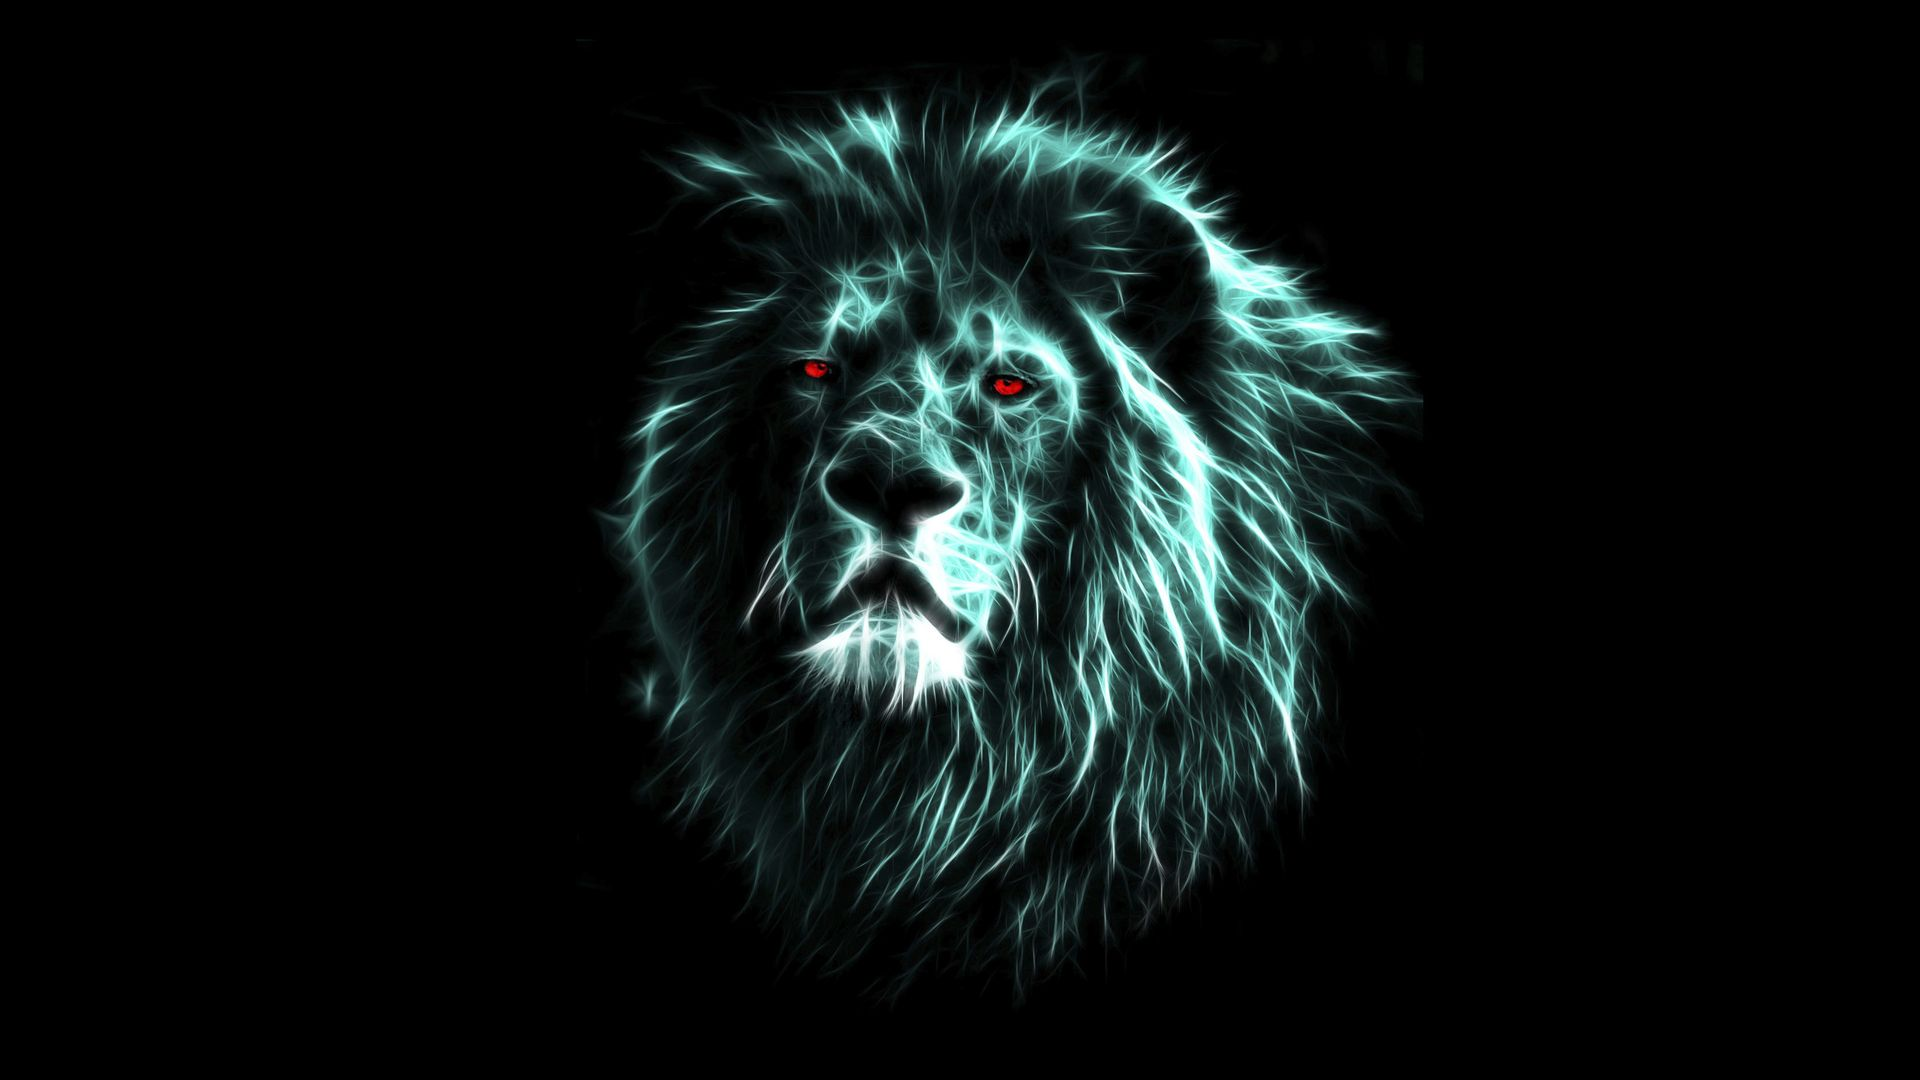 lion wallpapers hd android apps on google play | hd wallpapers